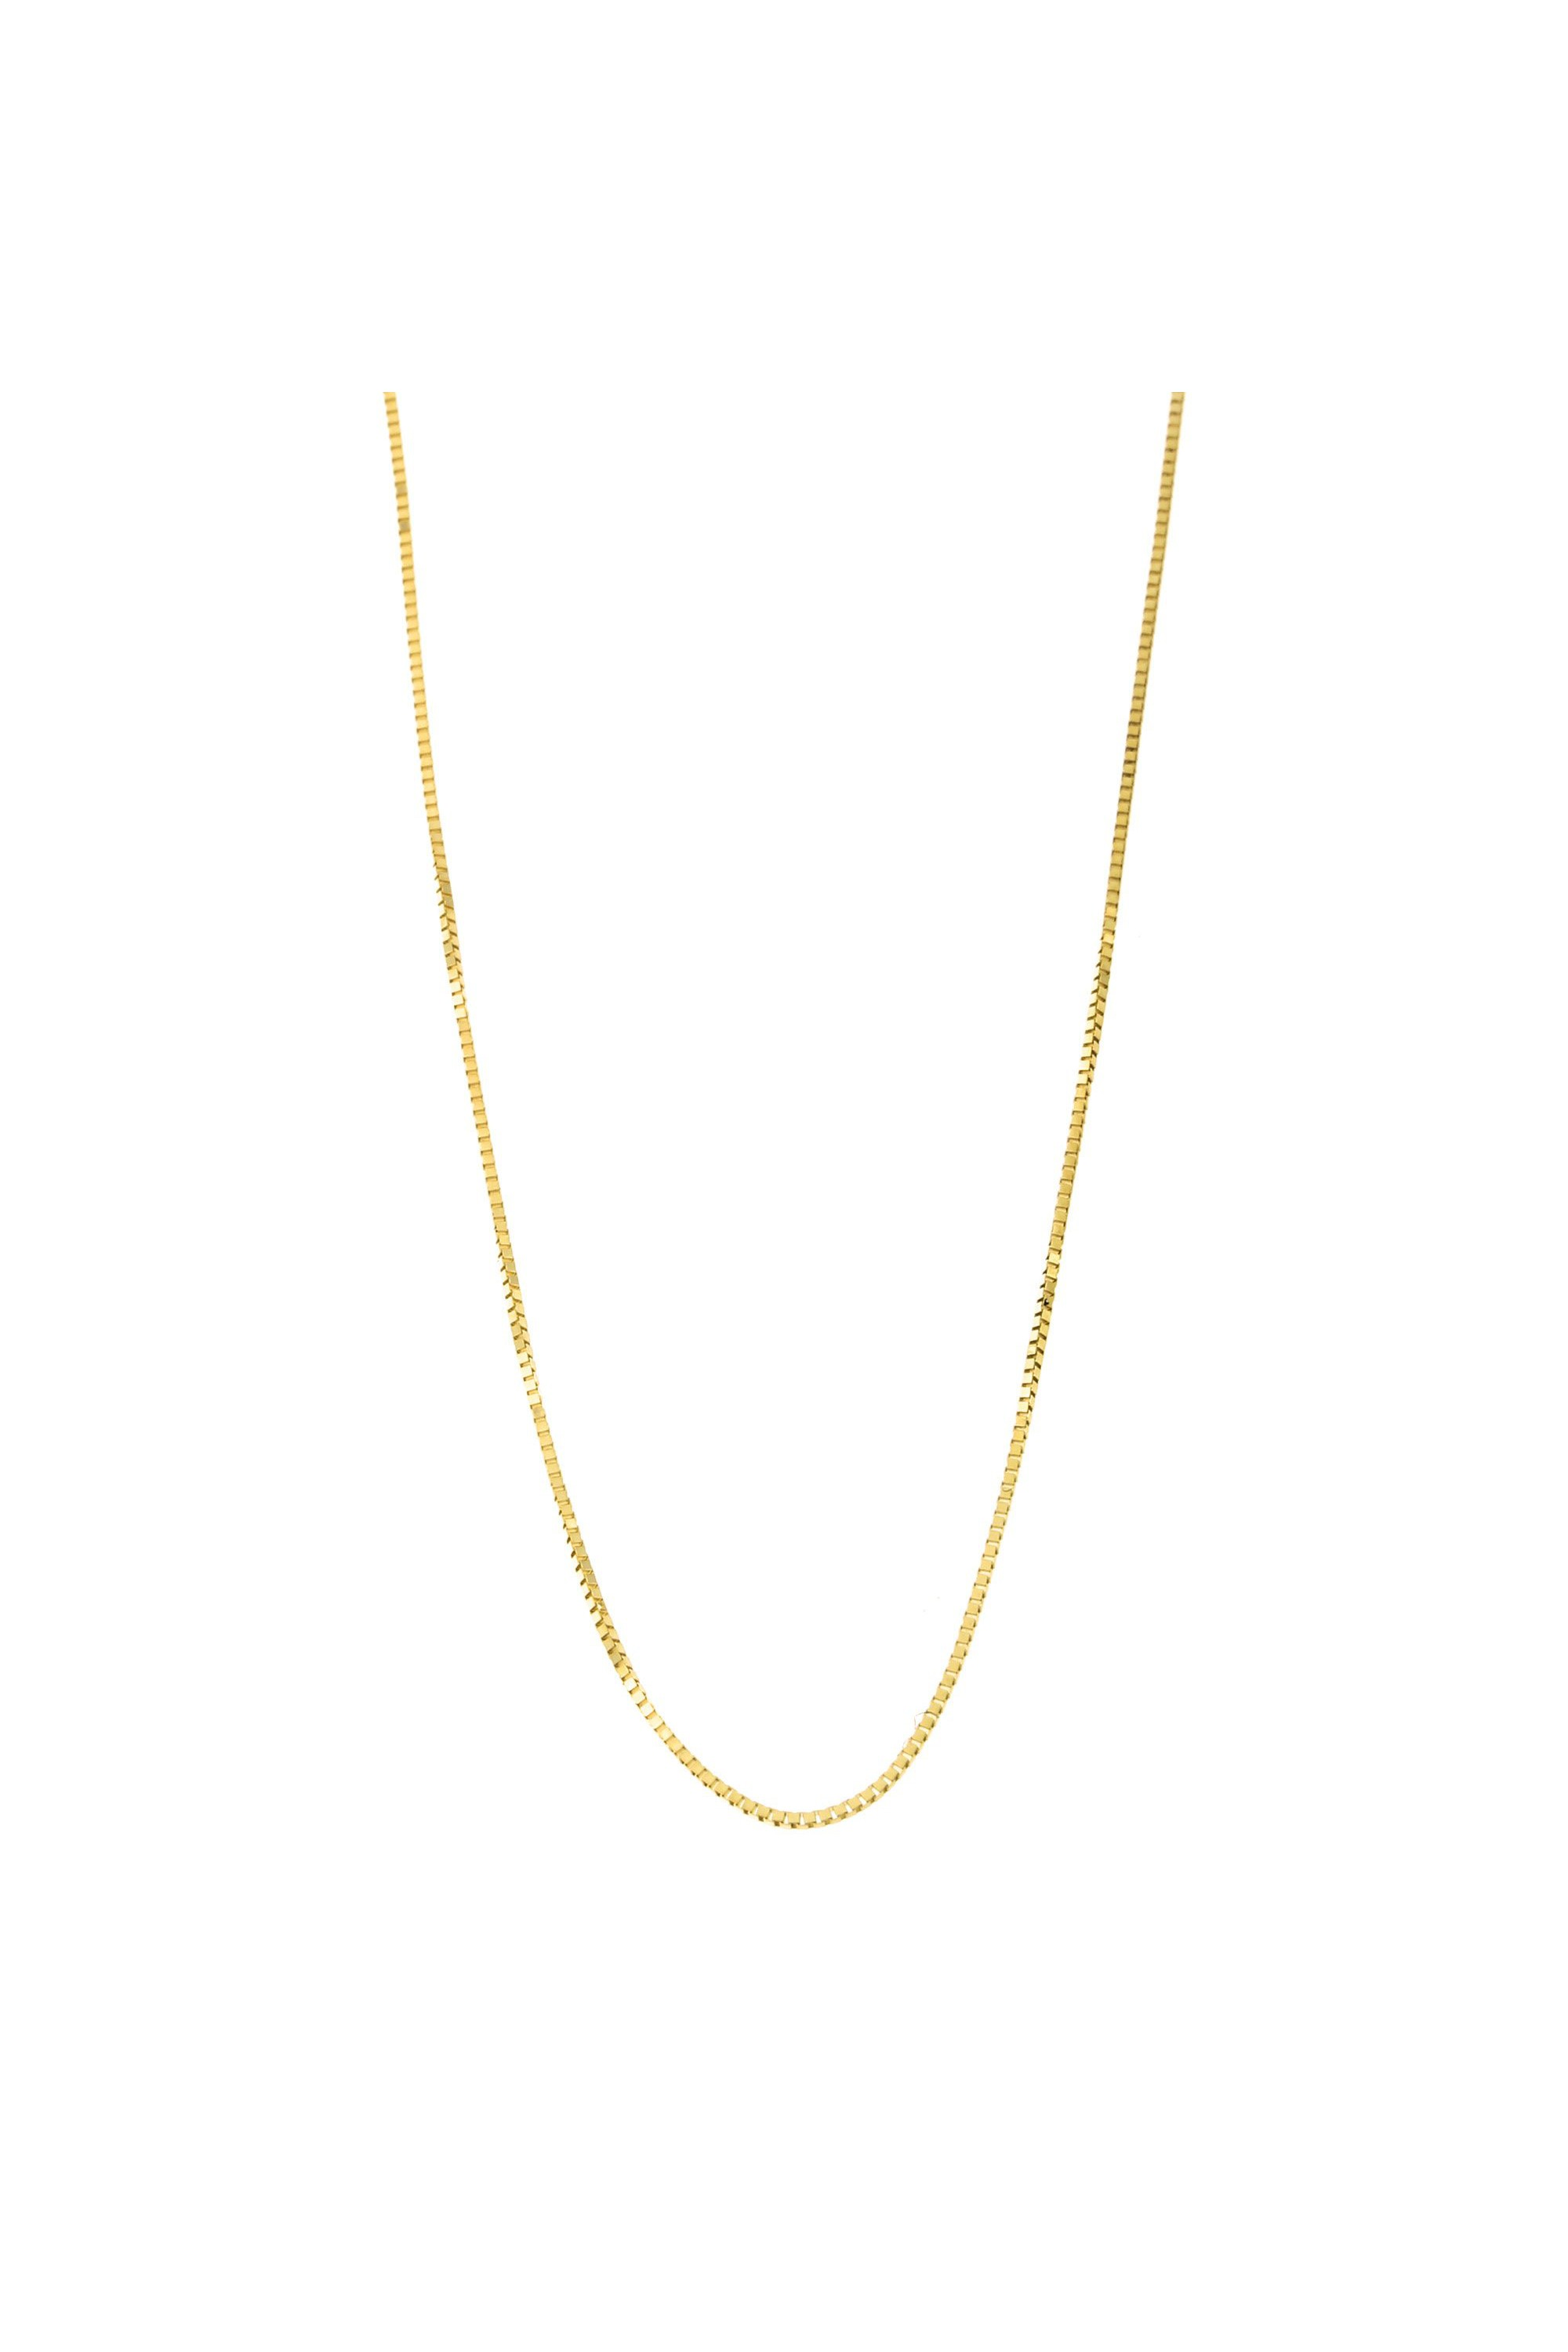 """1.0mm 18K Yellow Gold Box Chain 16/"""" 18/"""" 20/"""" 24/"""" or 30/"""" Made in Italy"""